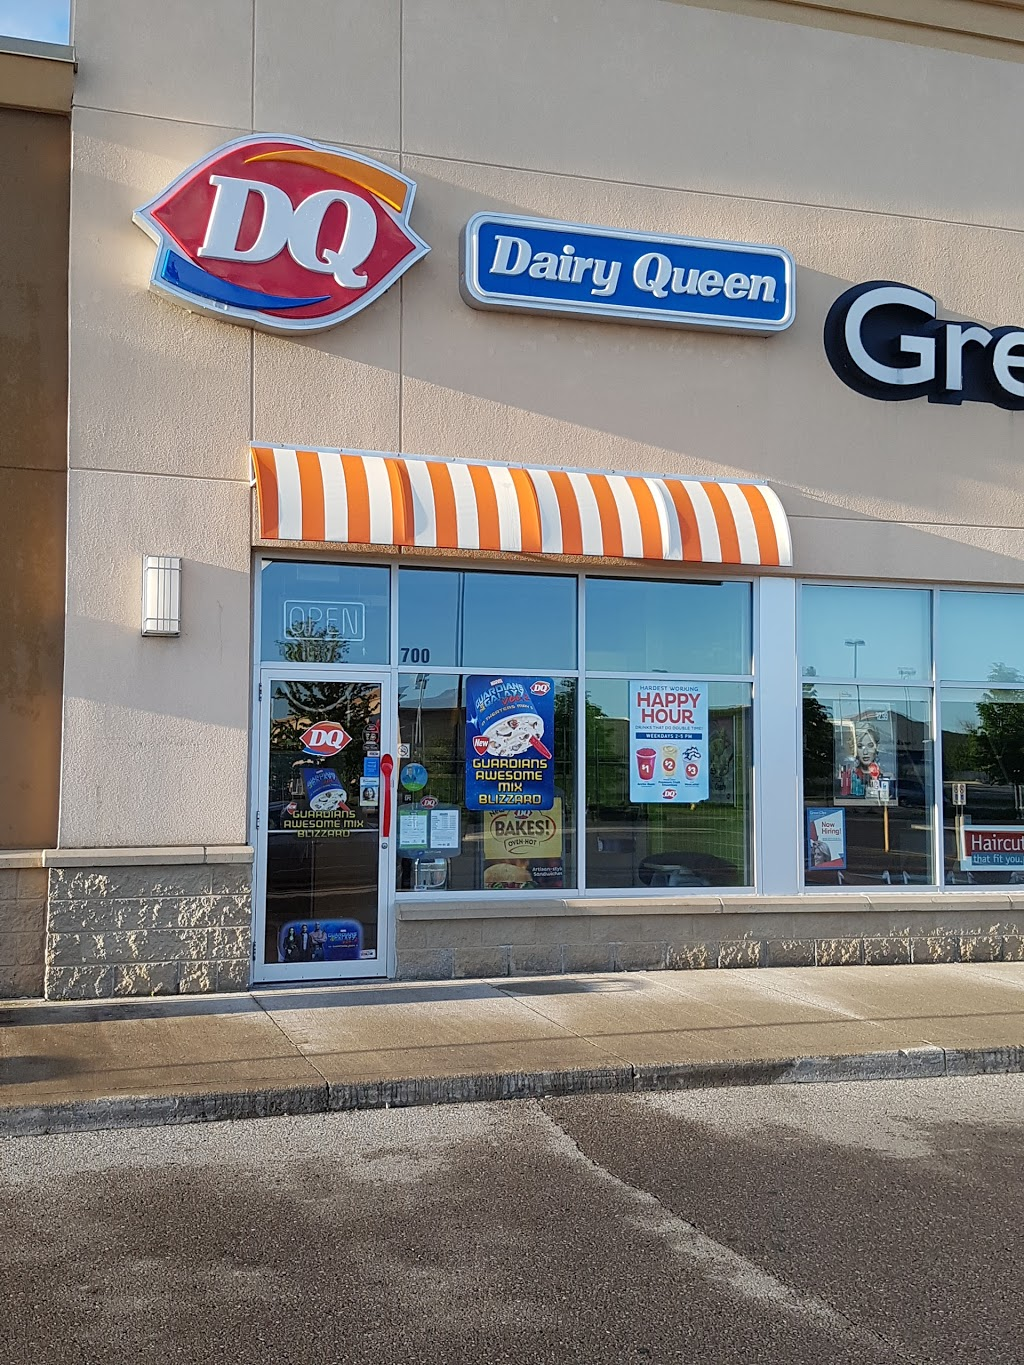 Dairy Queen (Treat)   store   575 Laval Dr, Oshawa, ON L1J 0B6, Canada   9055761923 OR +1 905-576-1923